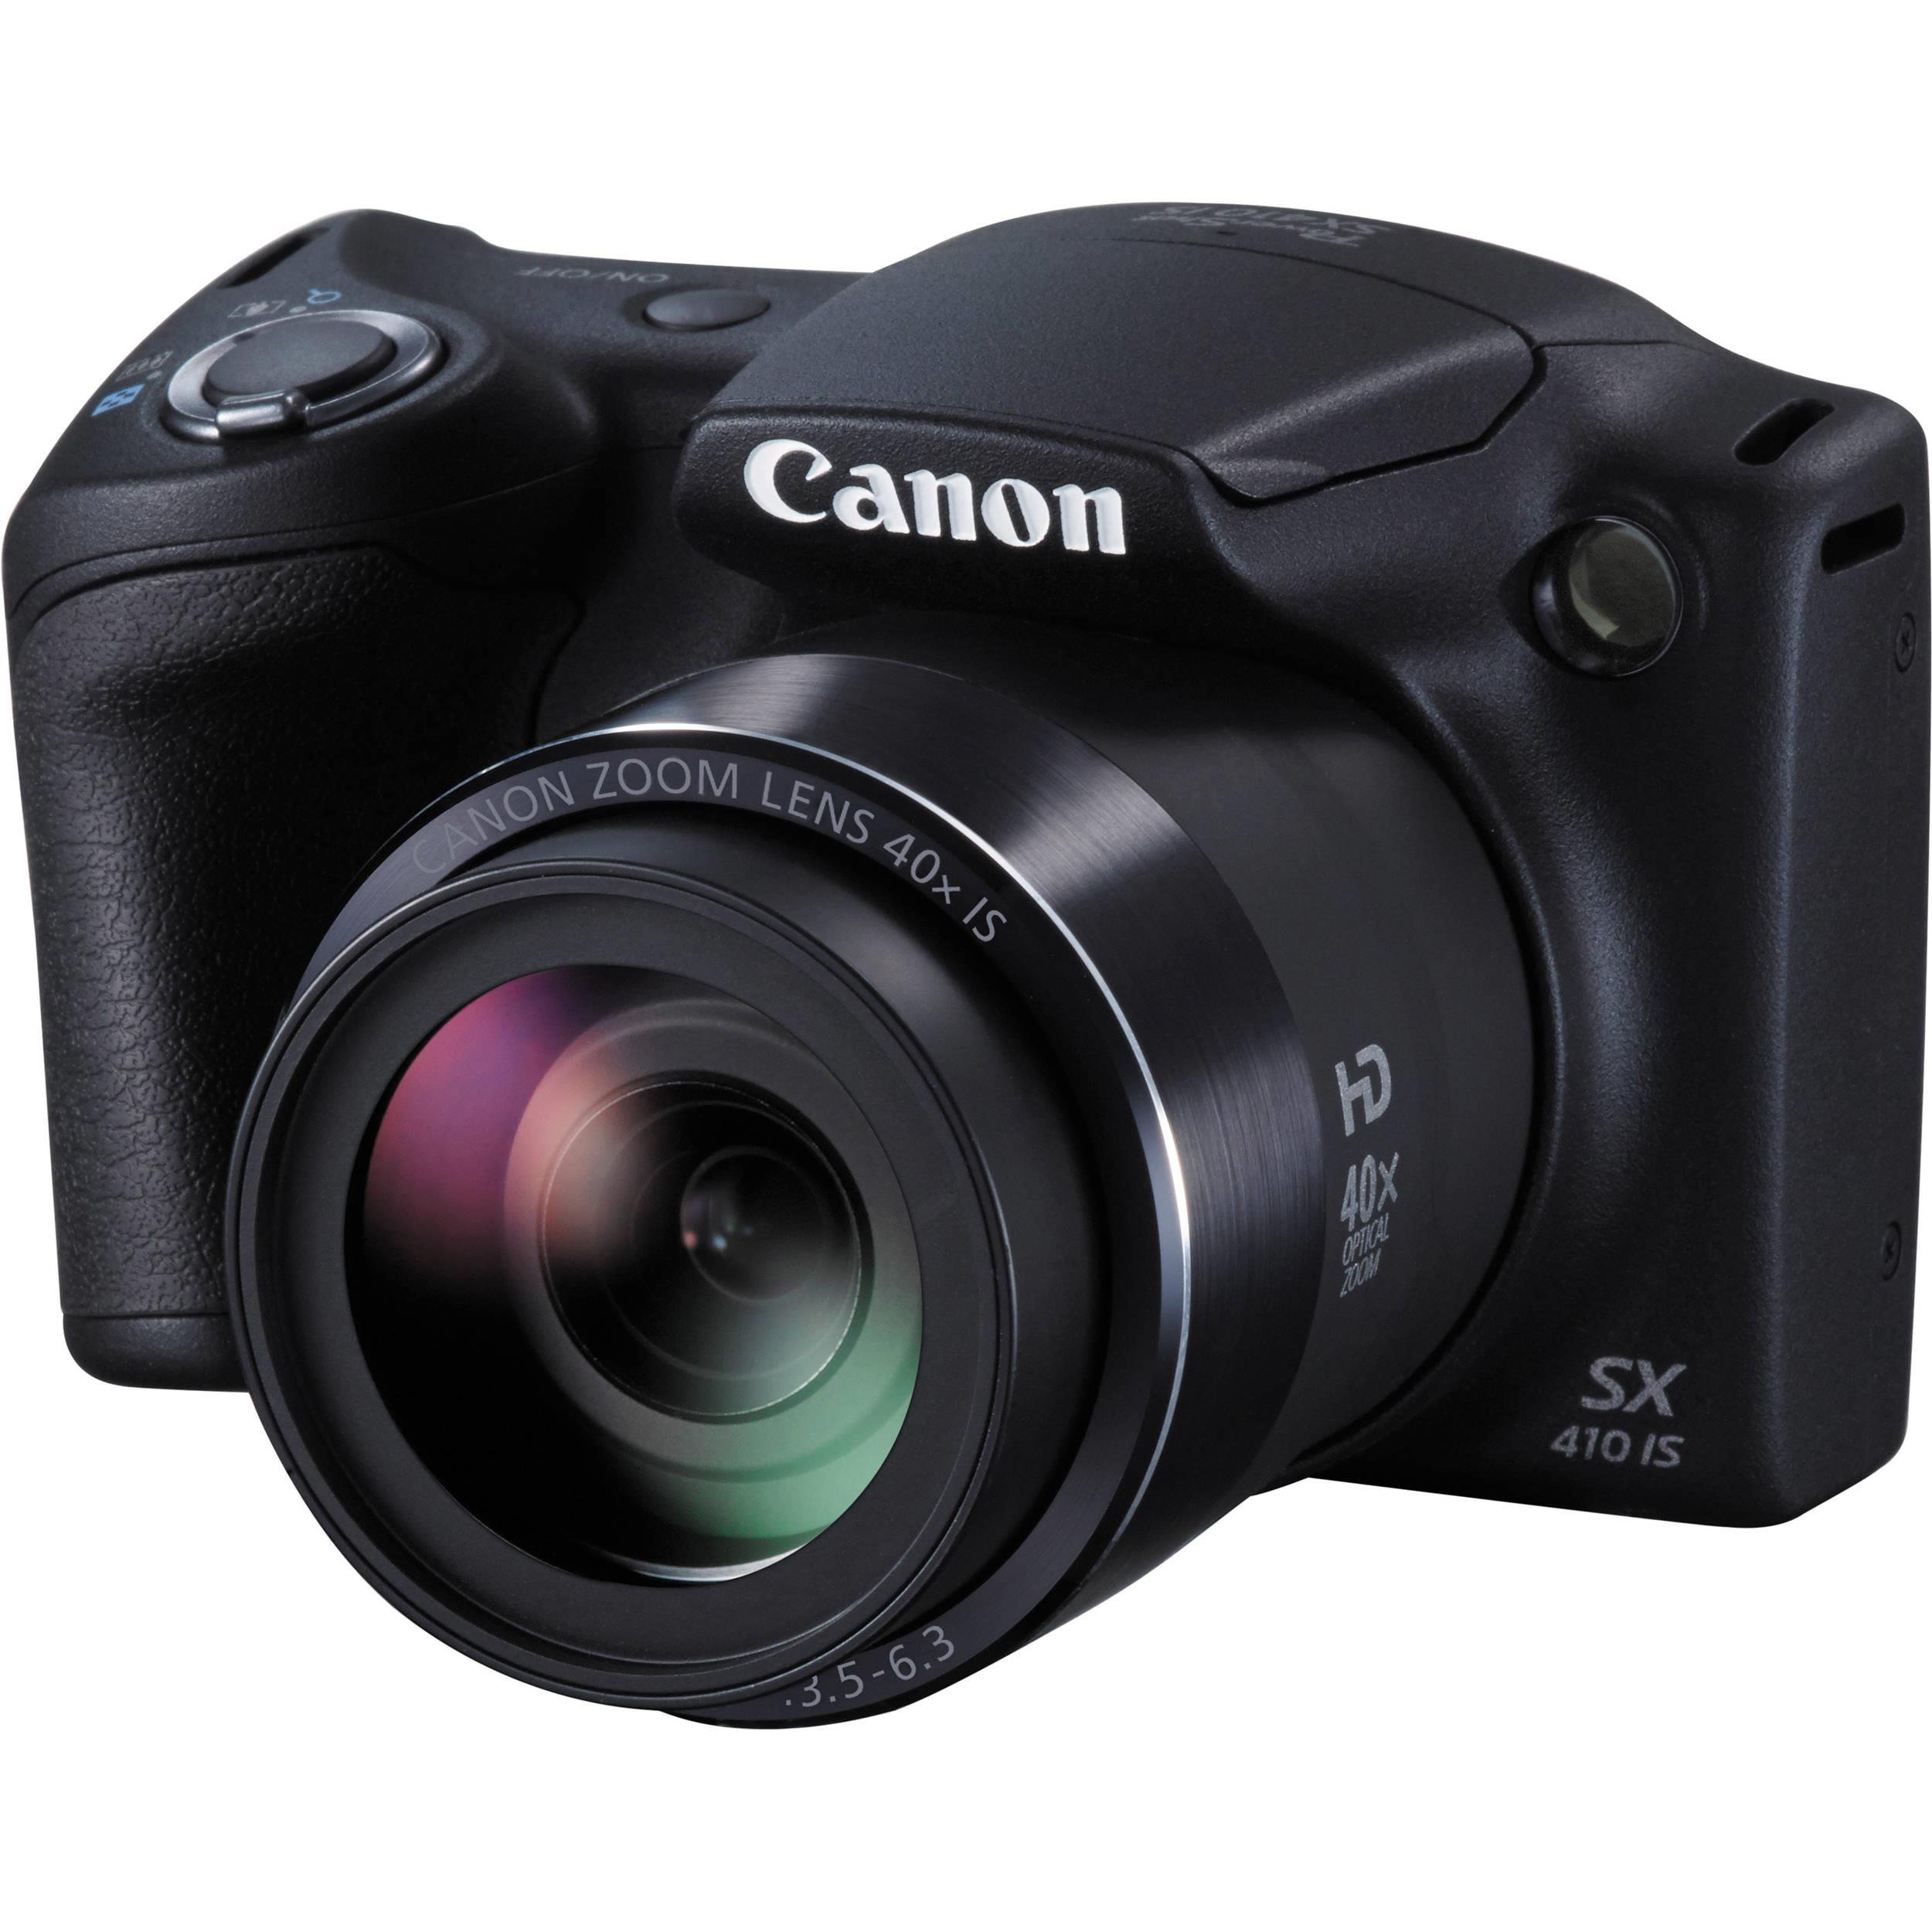 Canon SX410 IS Image